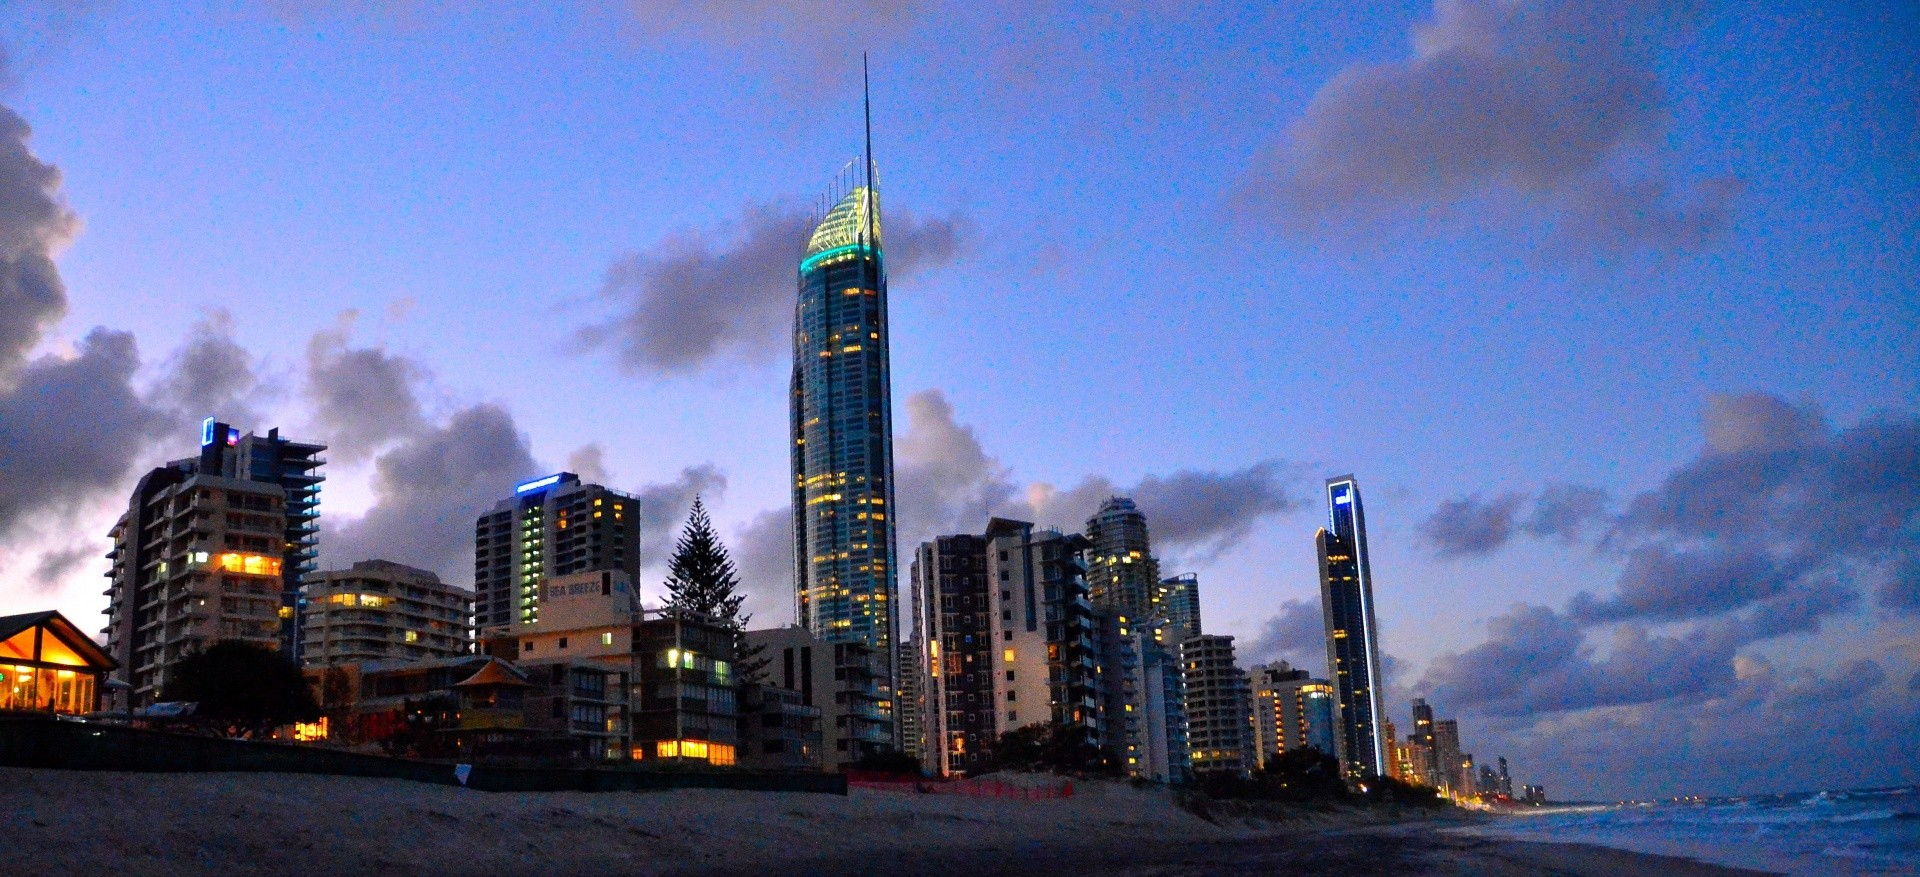 Bertie's photo of Surfers Paradise (Gold Coast)